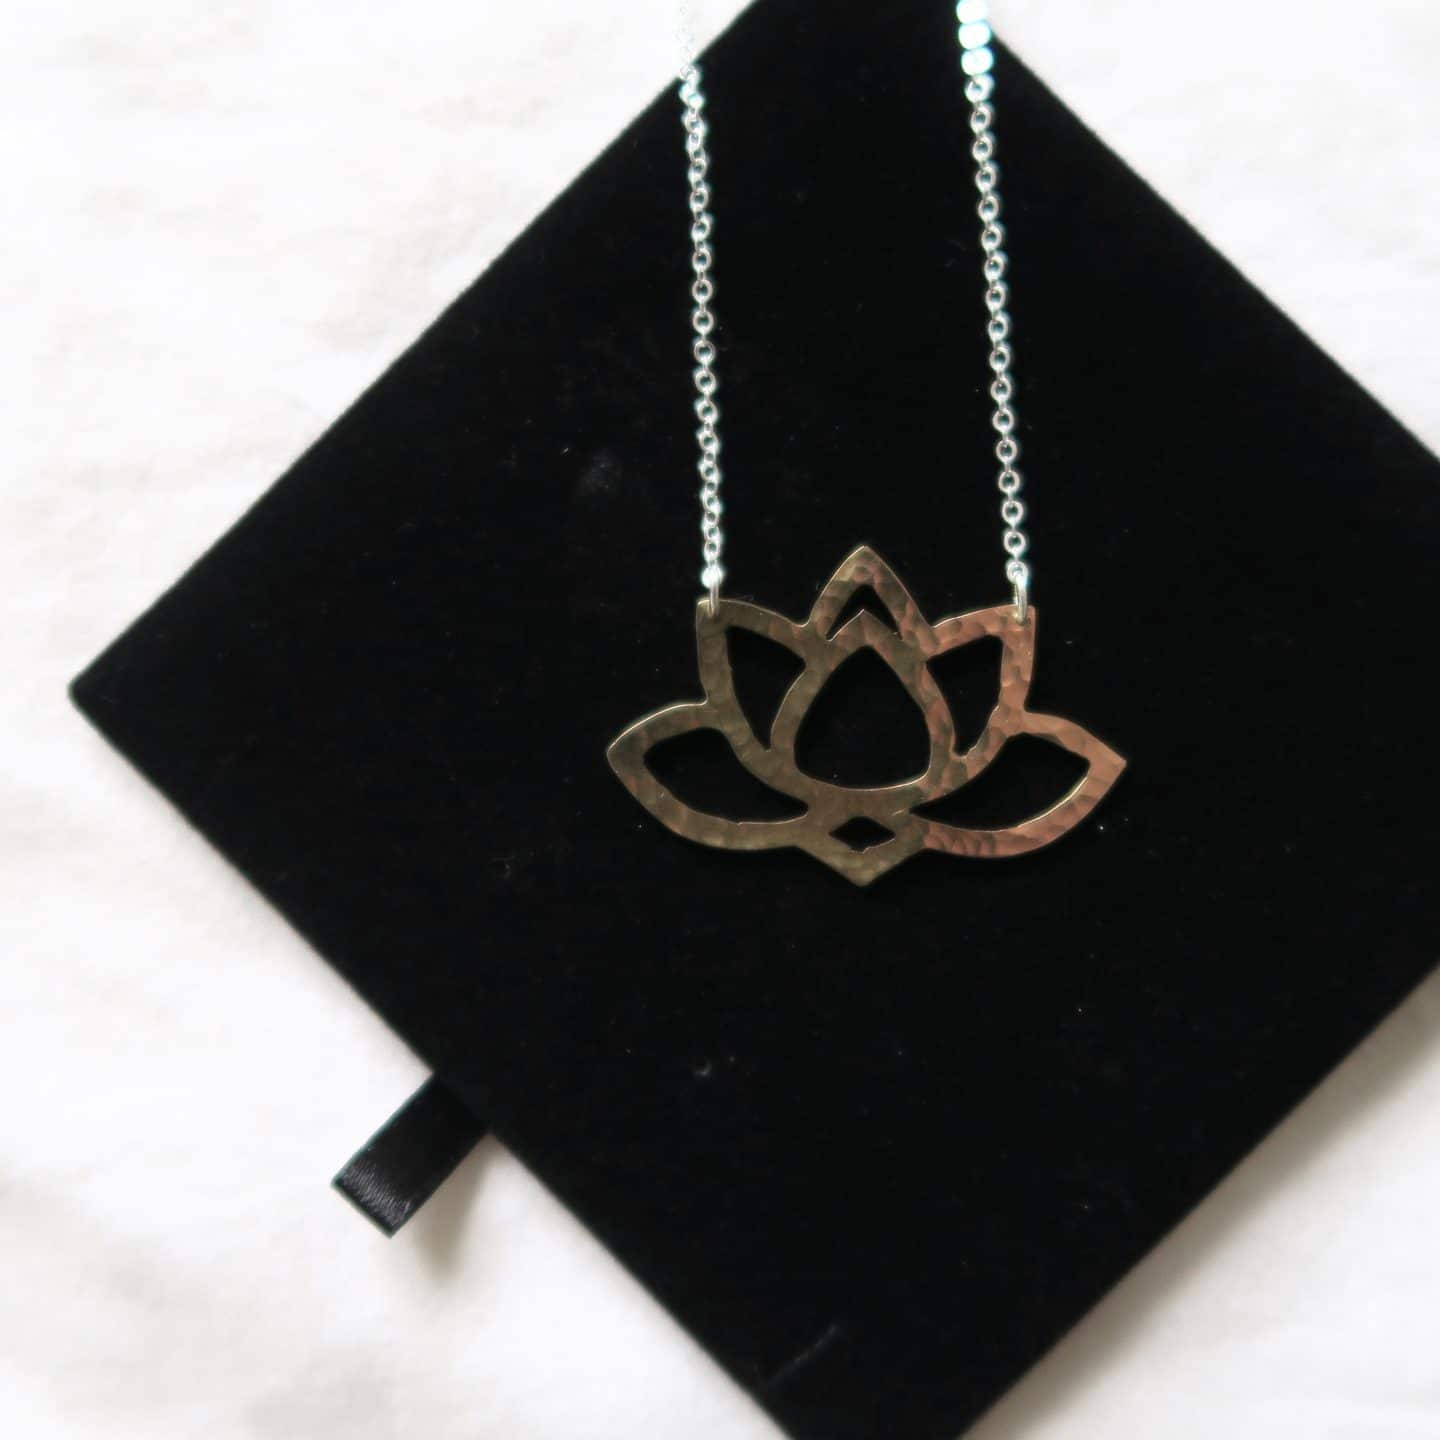 Lotus Pendant by Just Trade x Wellcome Collection | Curiously Conscious